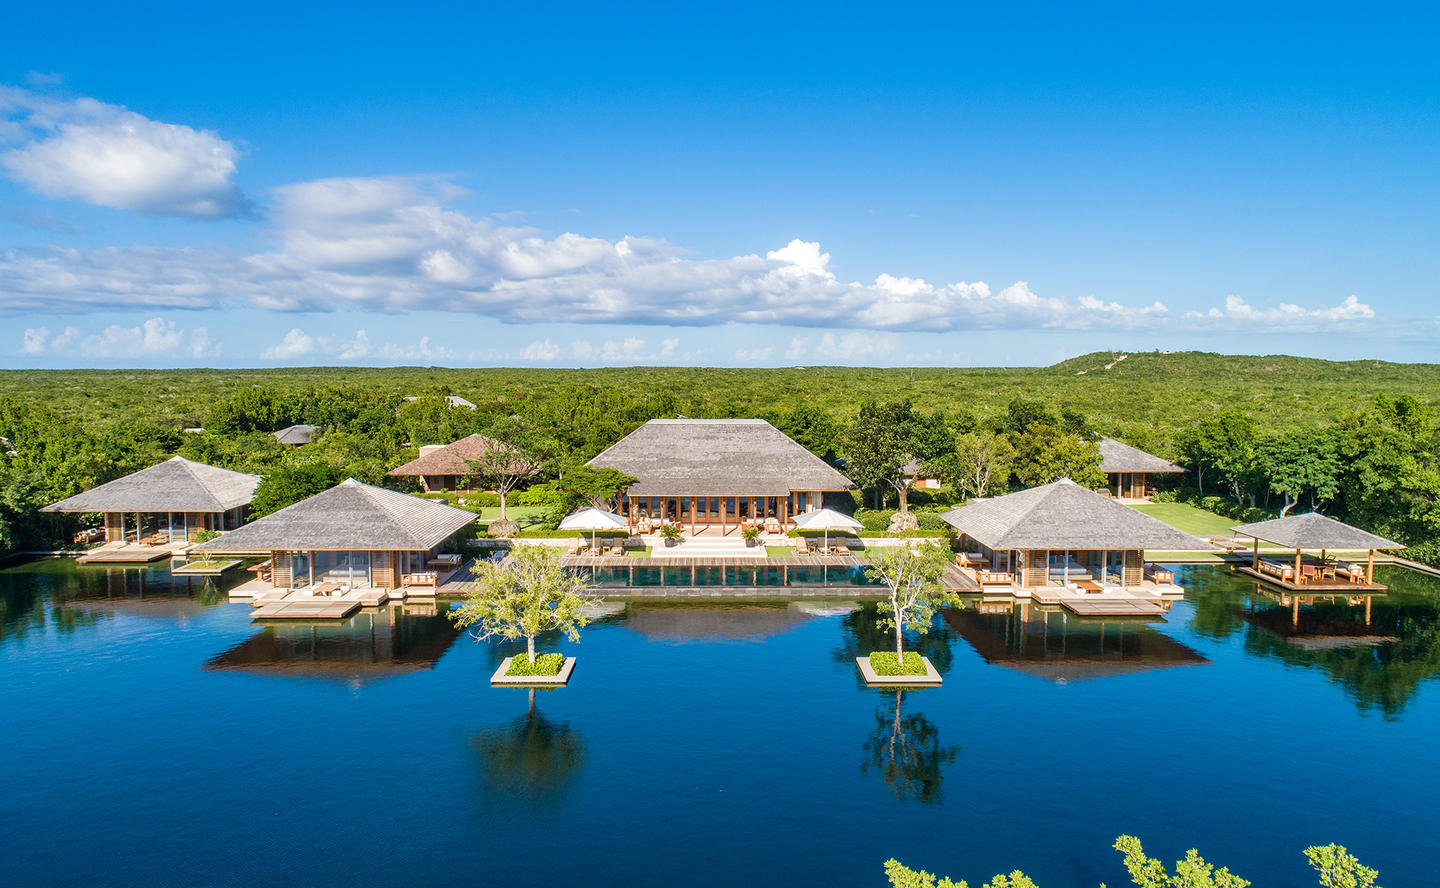 Aerial View, Four-Bedroom Tranquility Villa - Amanyara, Turks & Caicos